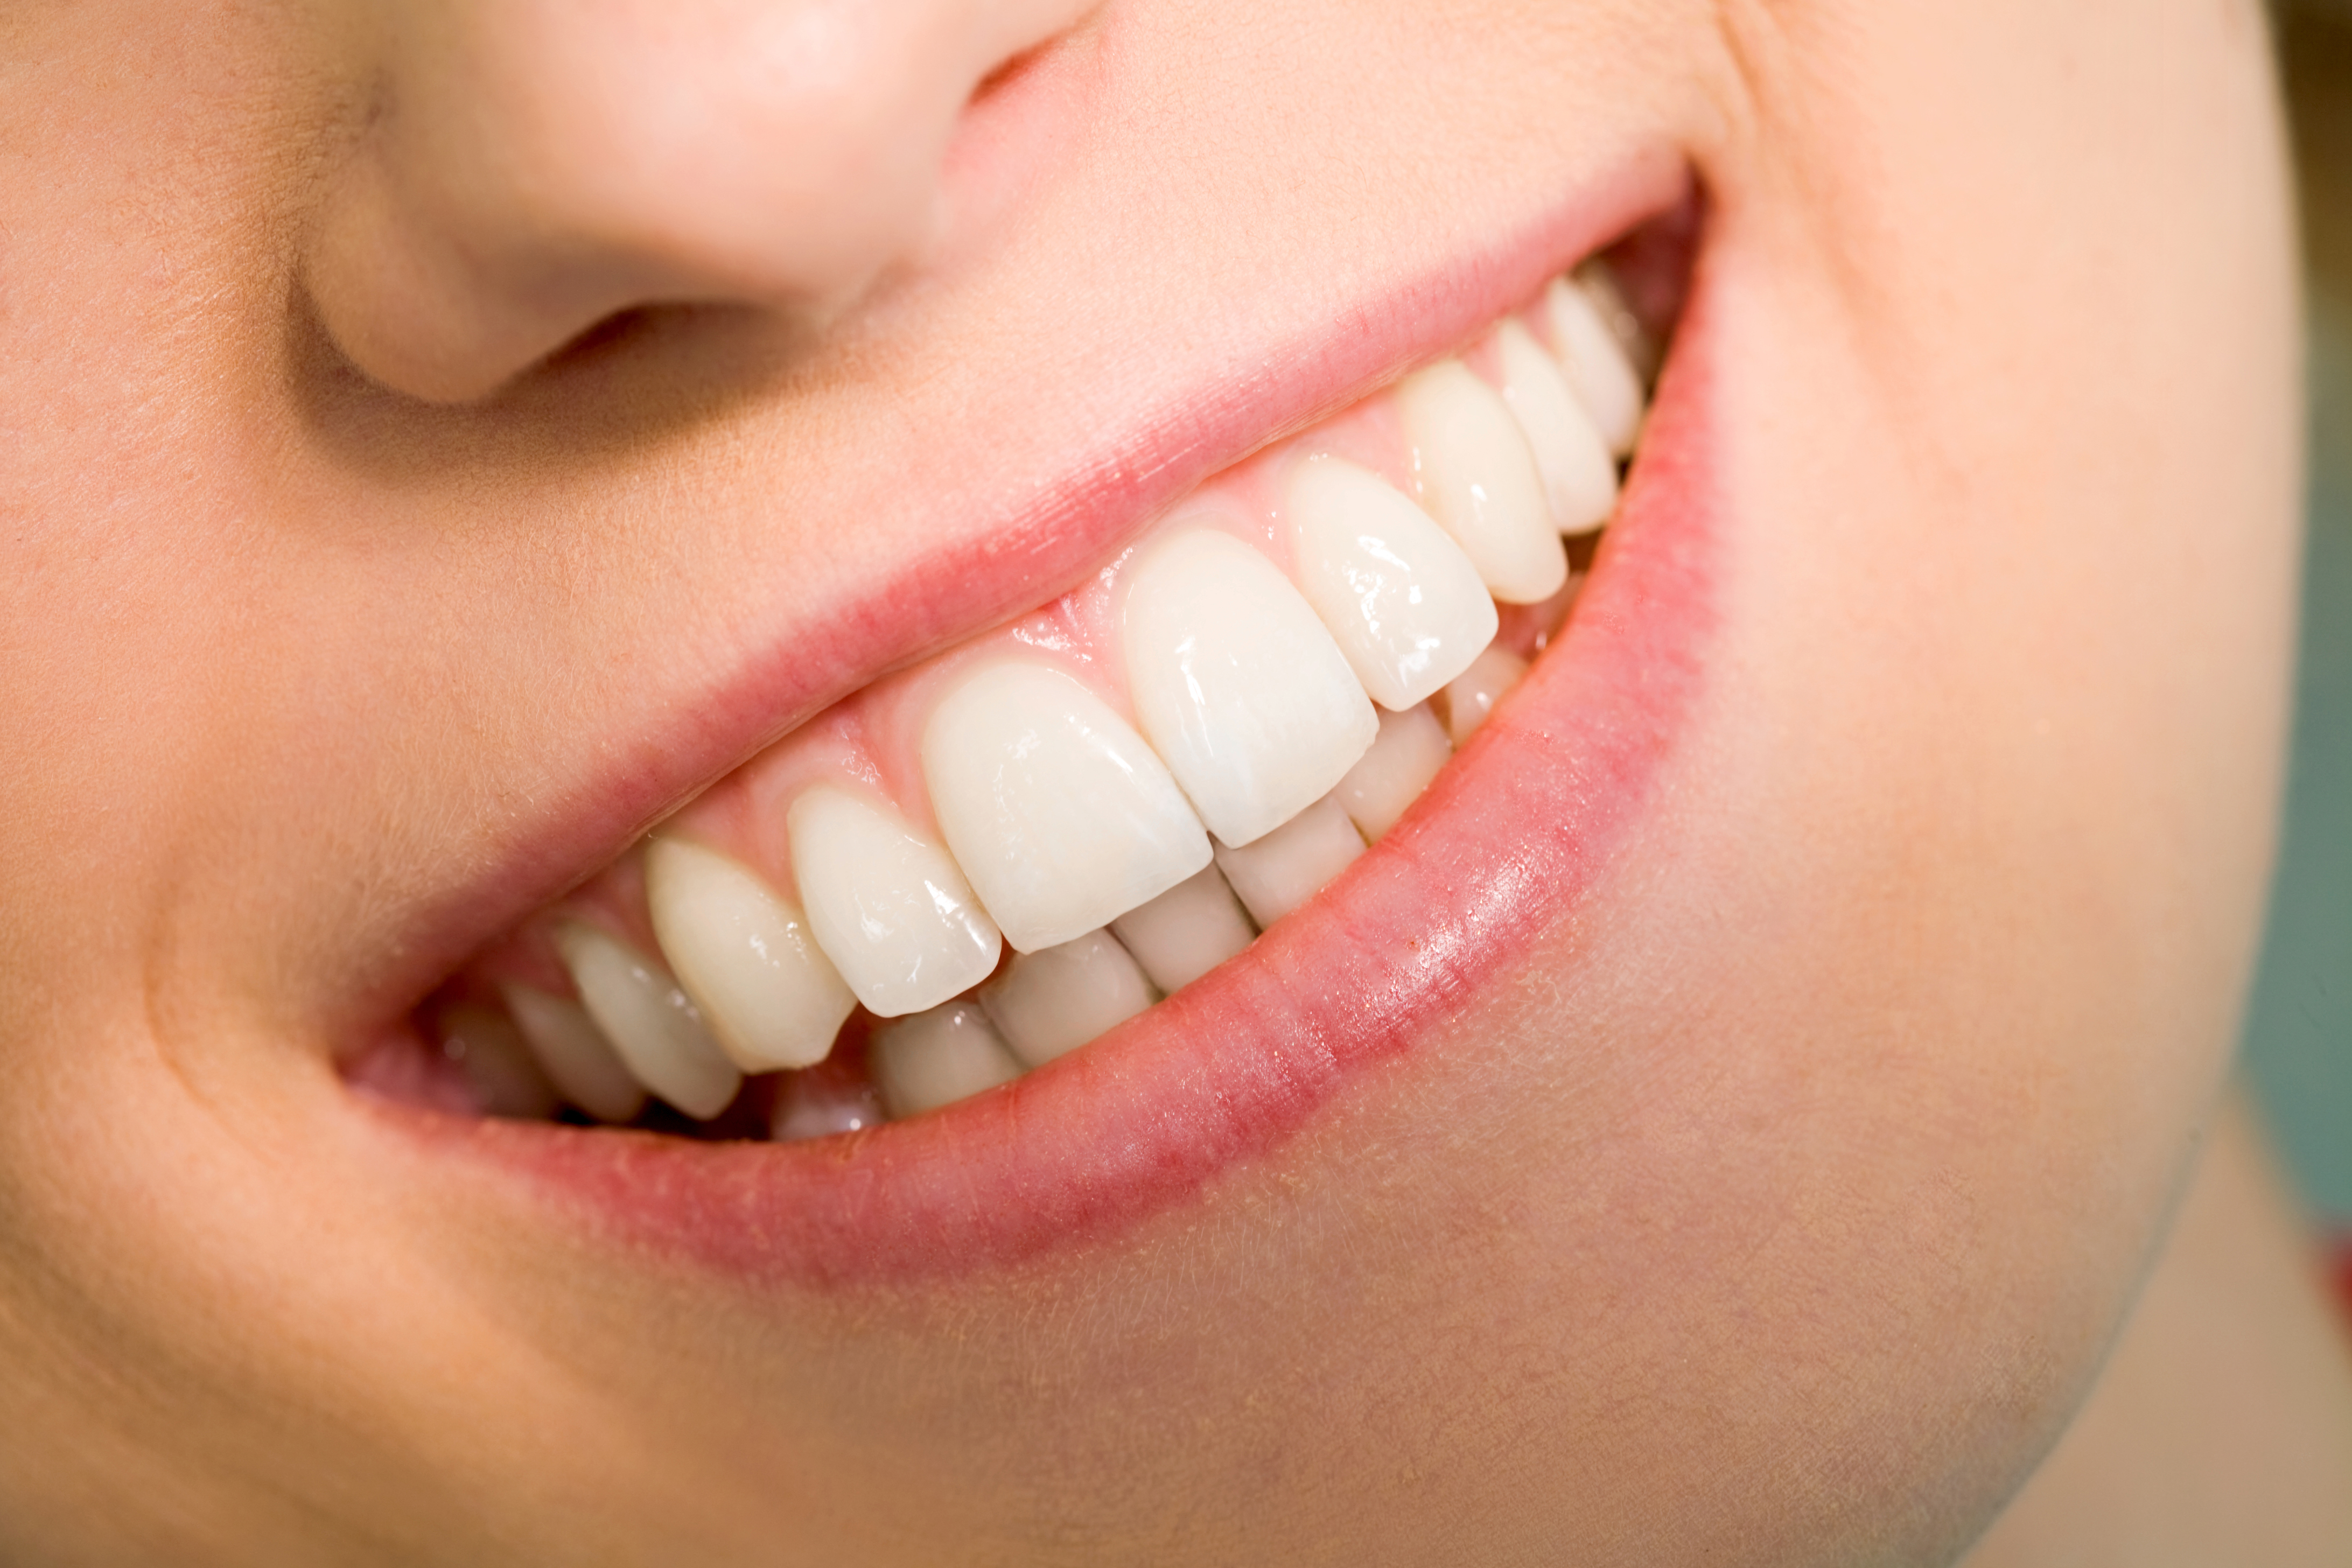 Fill In the Gap in Your Smile with a Crown and Bridge from Dr. Schramm